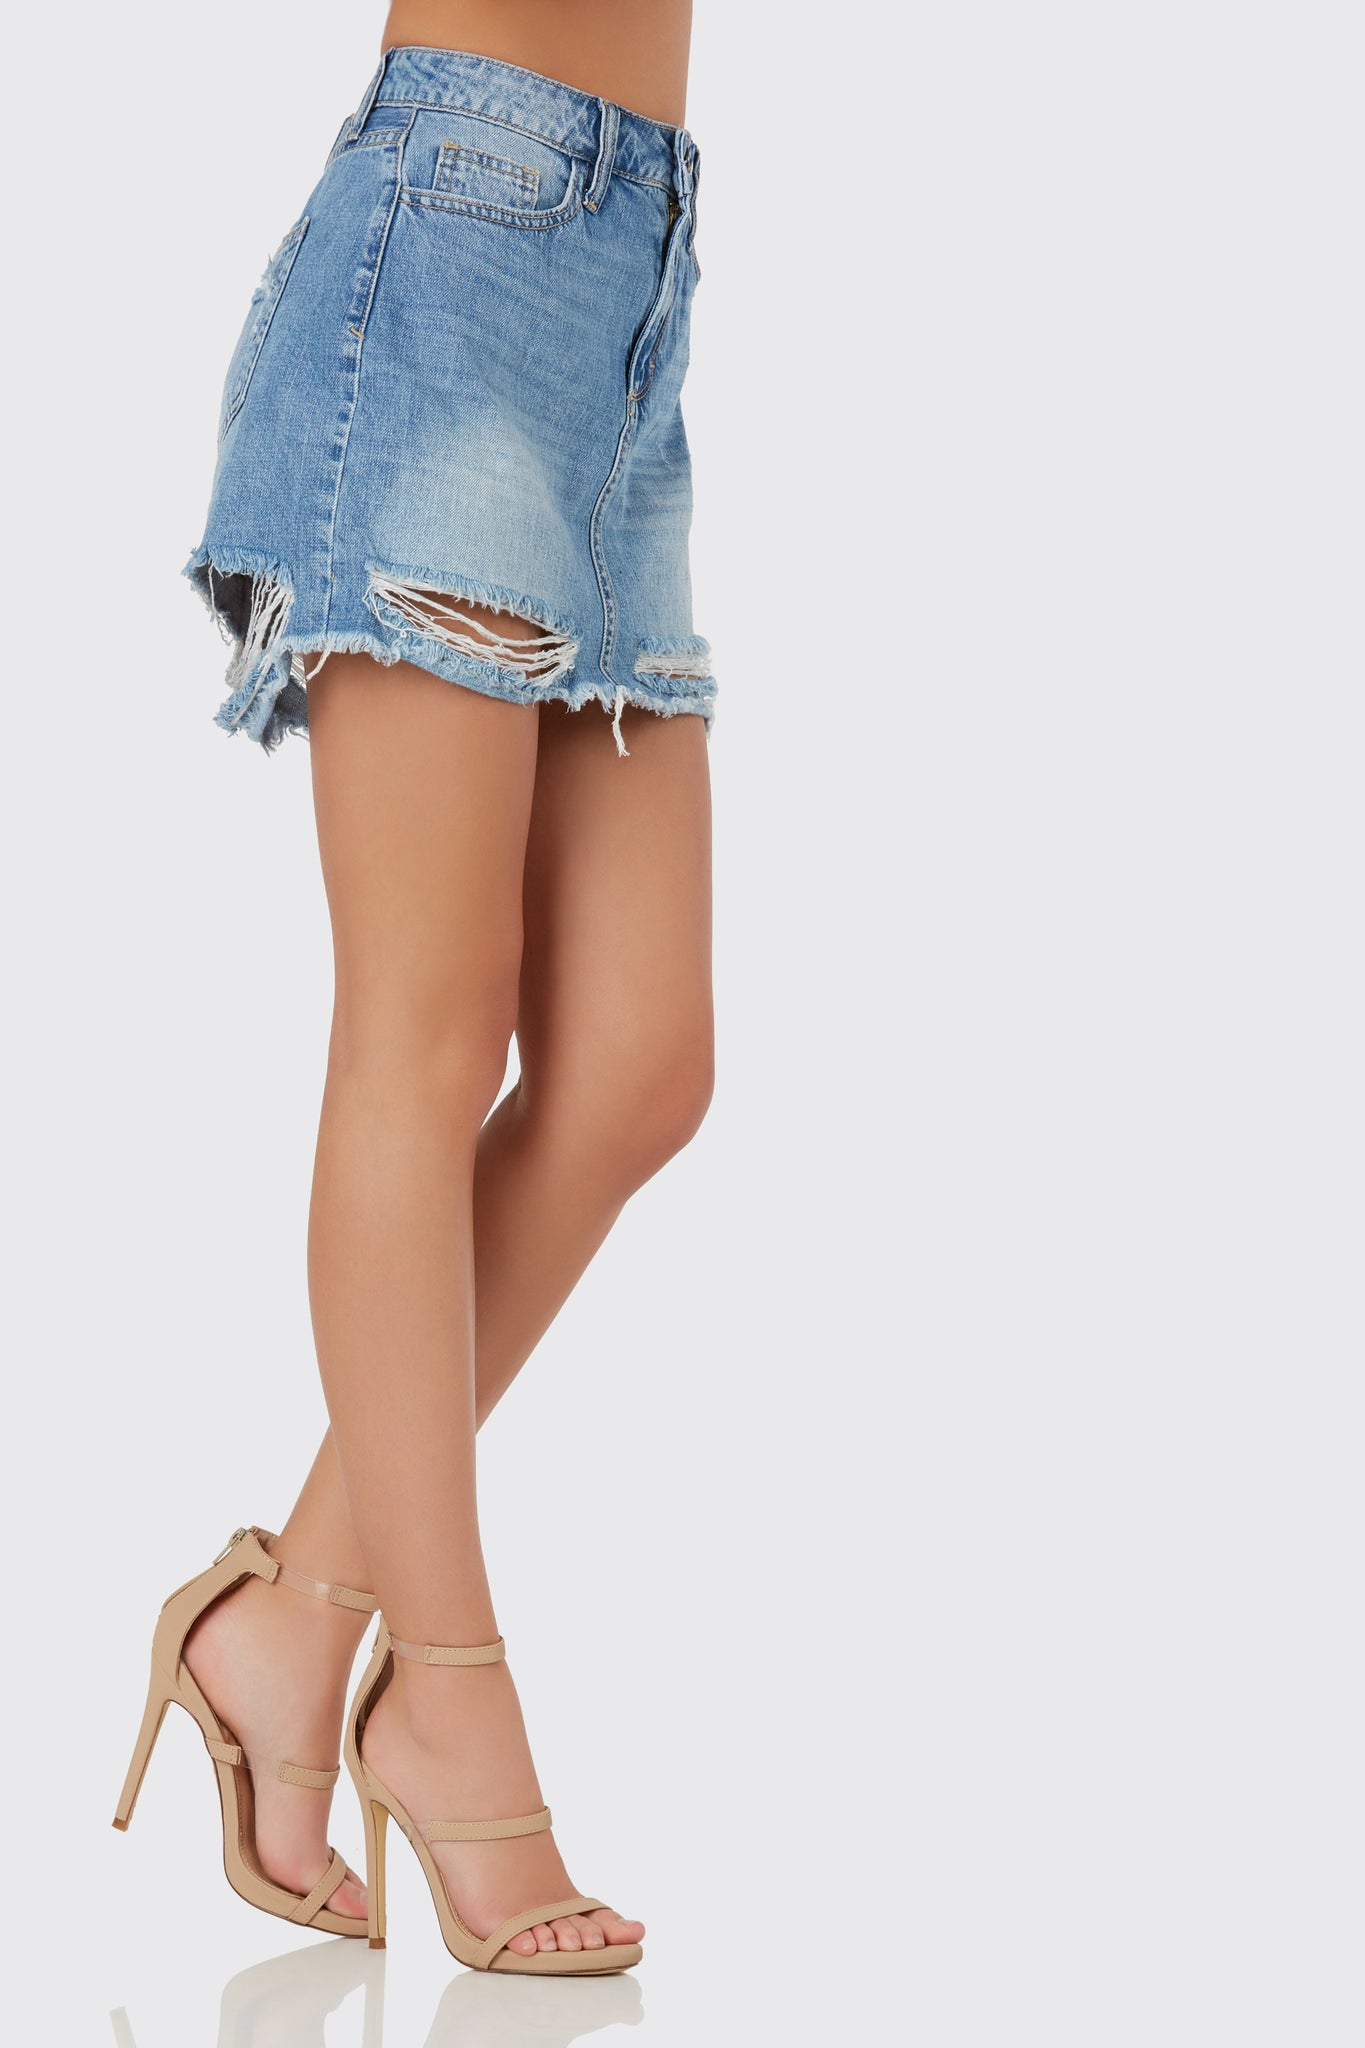 Chic deim mini skirt with distressed detailing throughout. Shredding and frayed hem finish.